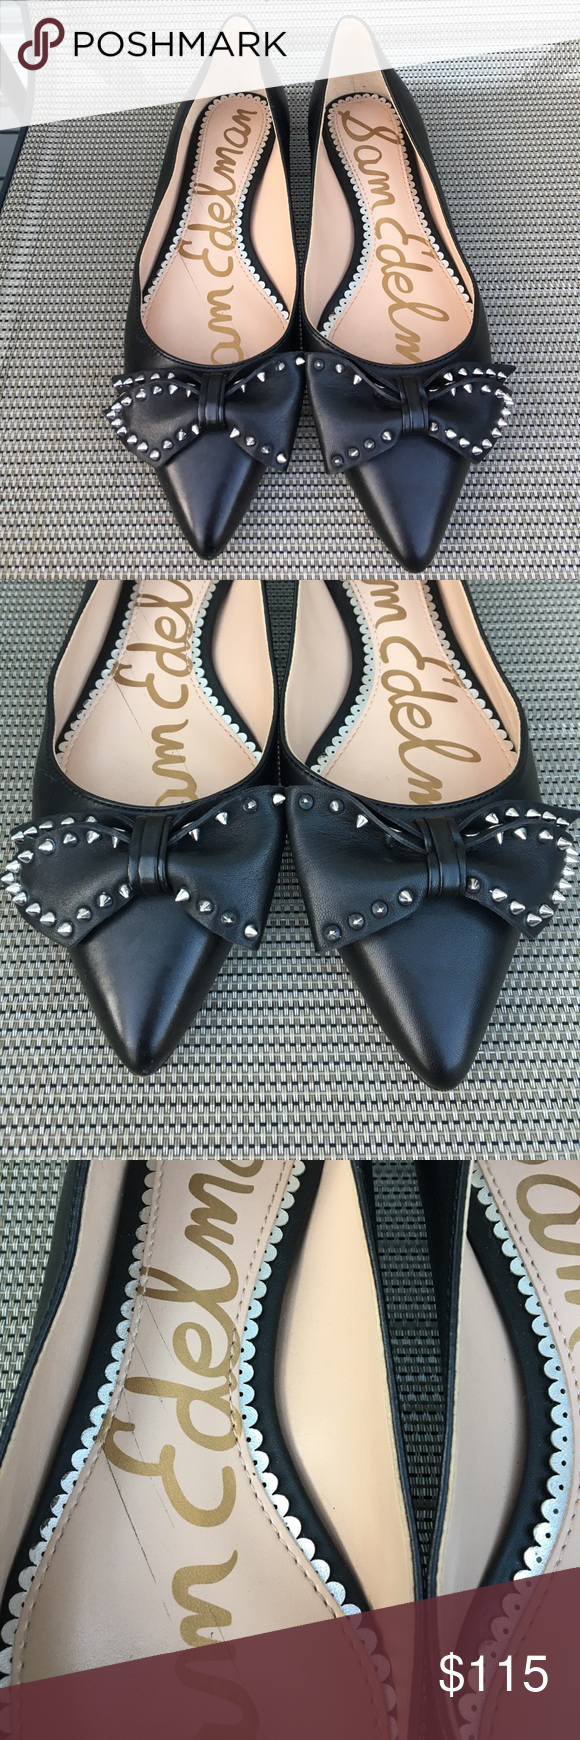 96606db6e45500 Sam Edelman Raisa Bow Flats 6.5 Black Sophistication meets edge with this  pointy-toe flat